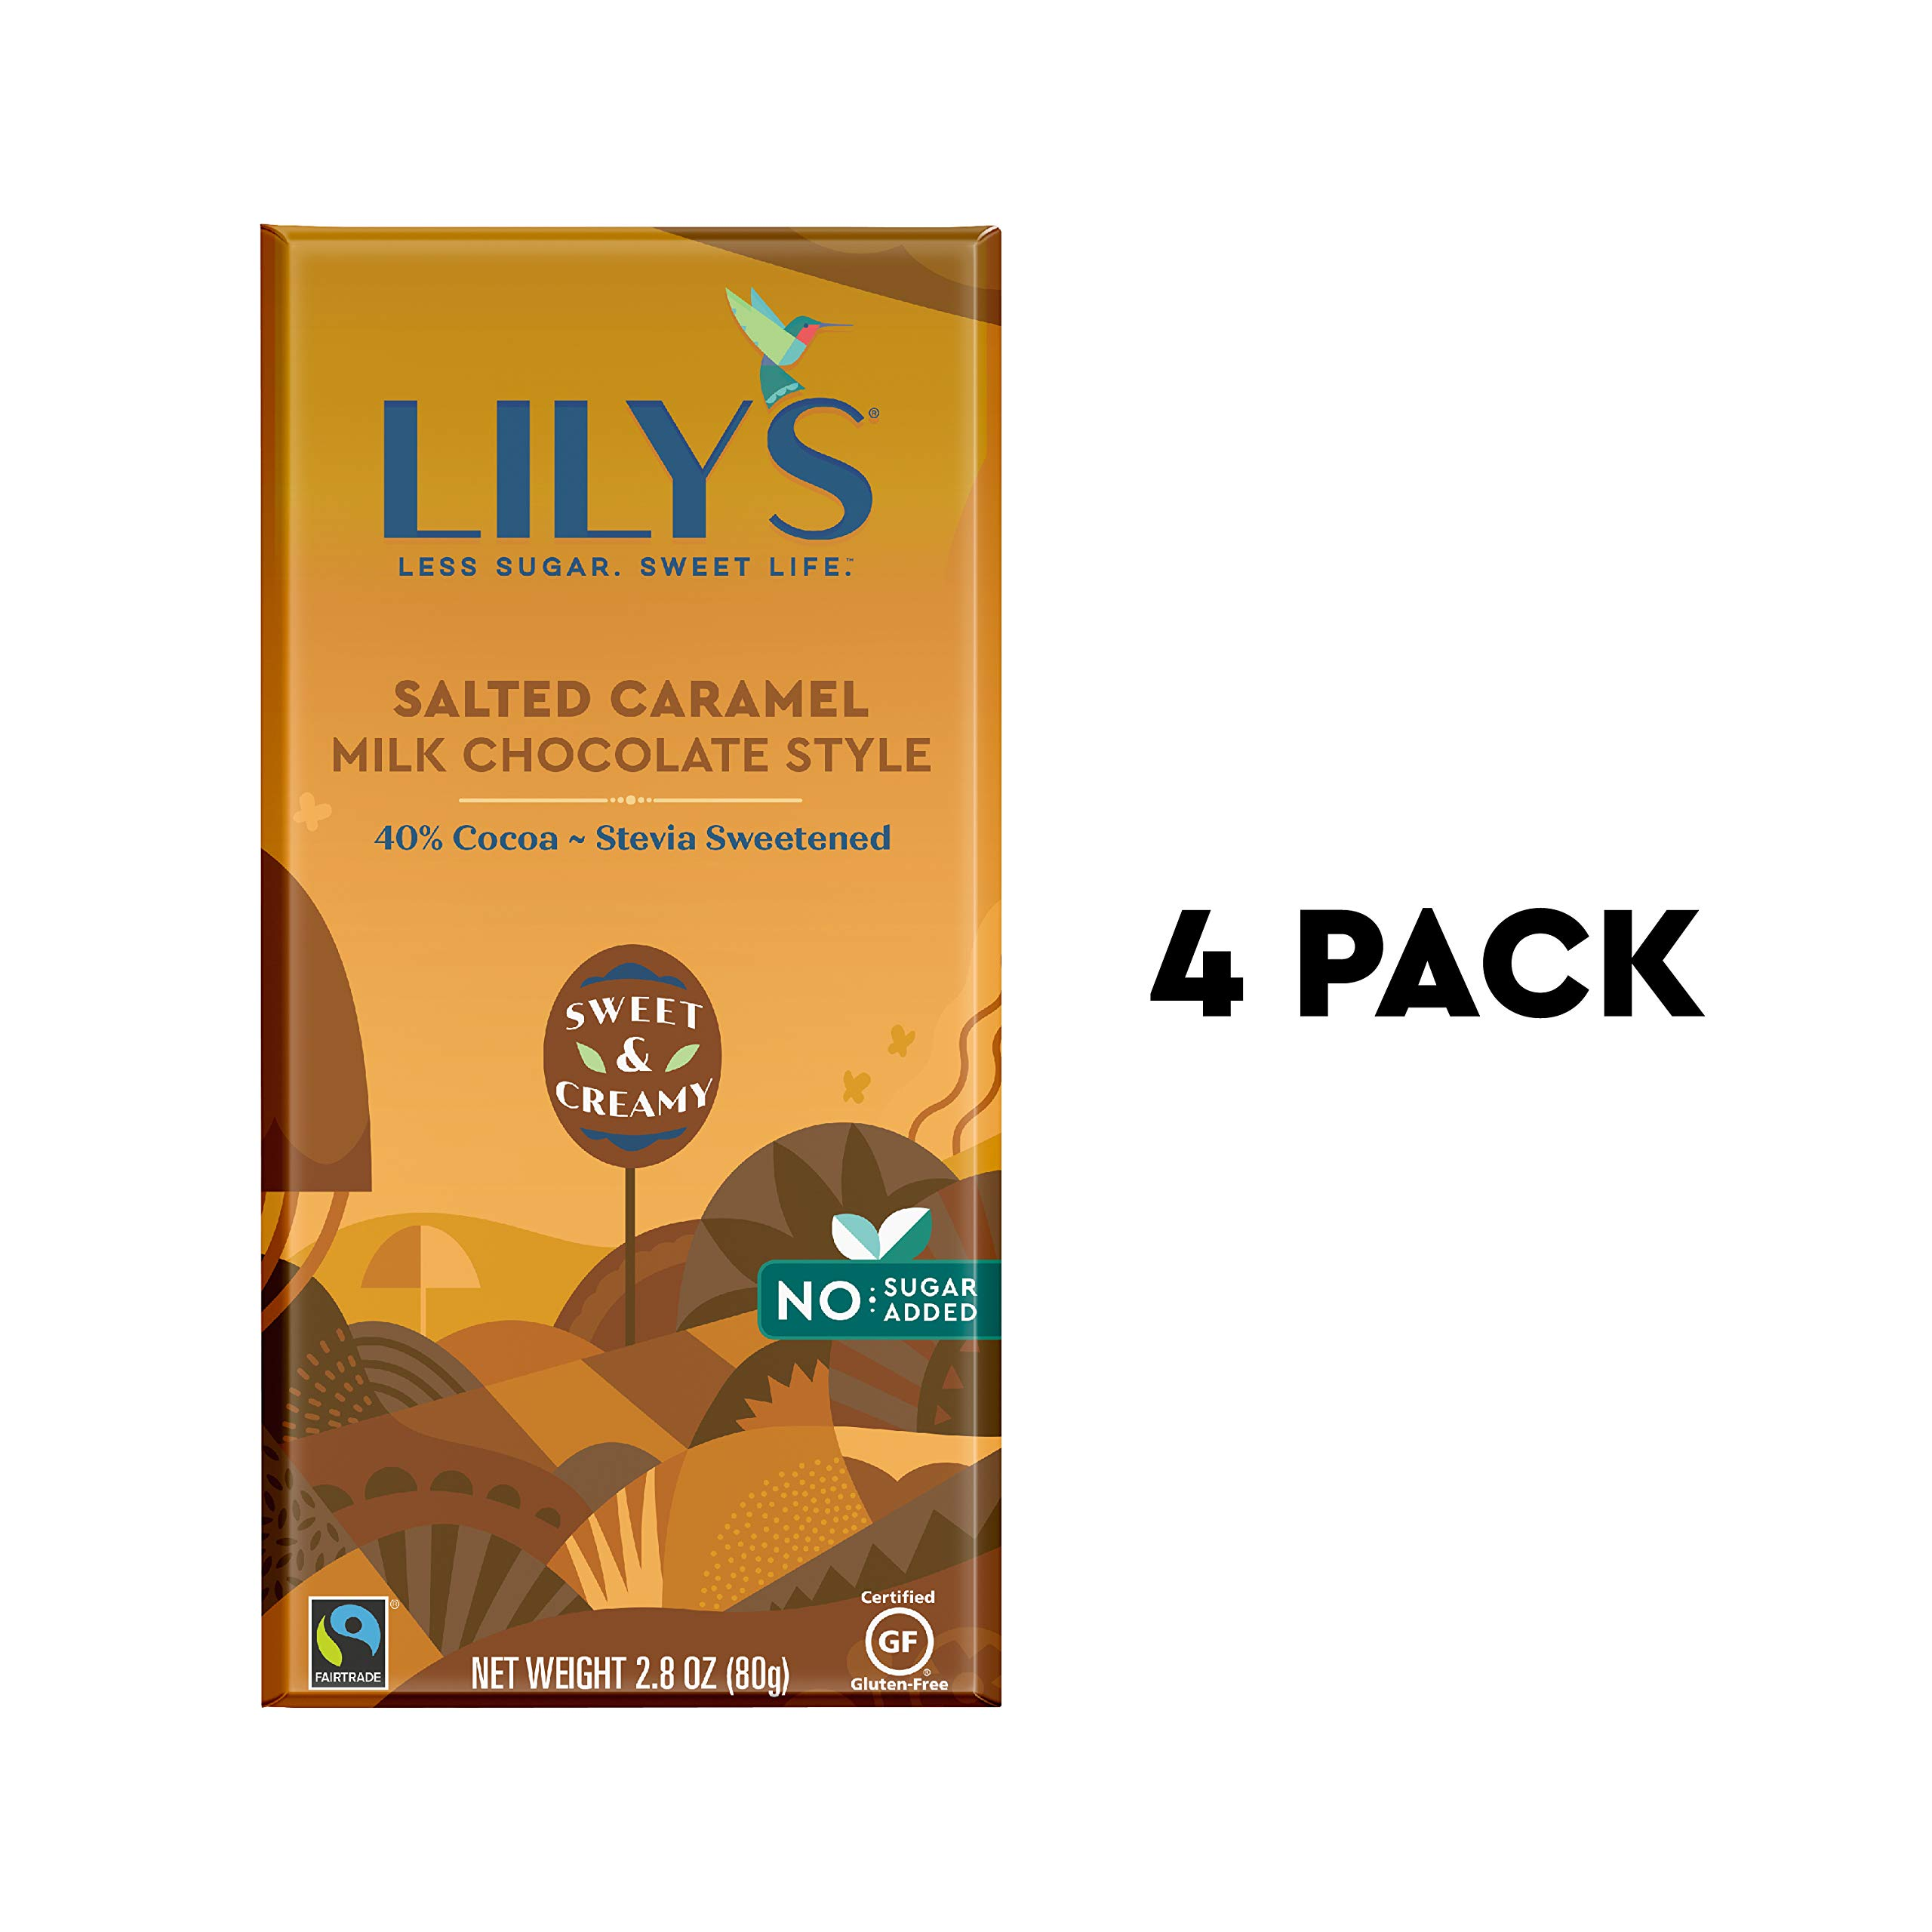 Caramelized & Salted Milk Chocolate bar by Lily's Sweets | Stevia Sweetened, No Added Sugar, Low-Carb, Keto Friendly | 40% Cacao | Fair Trade, Gluten-Free & Non-GMO | 2.8 oz, 4 Pack by Lily's (Image #1)